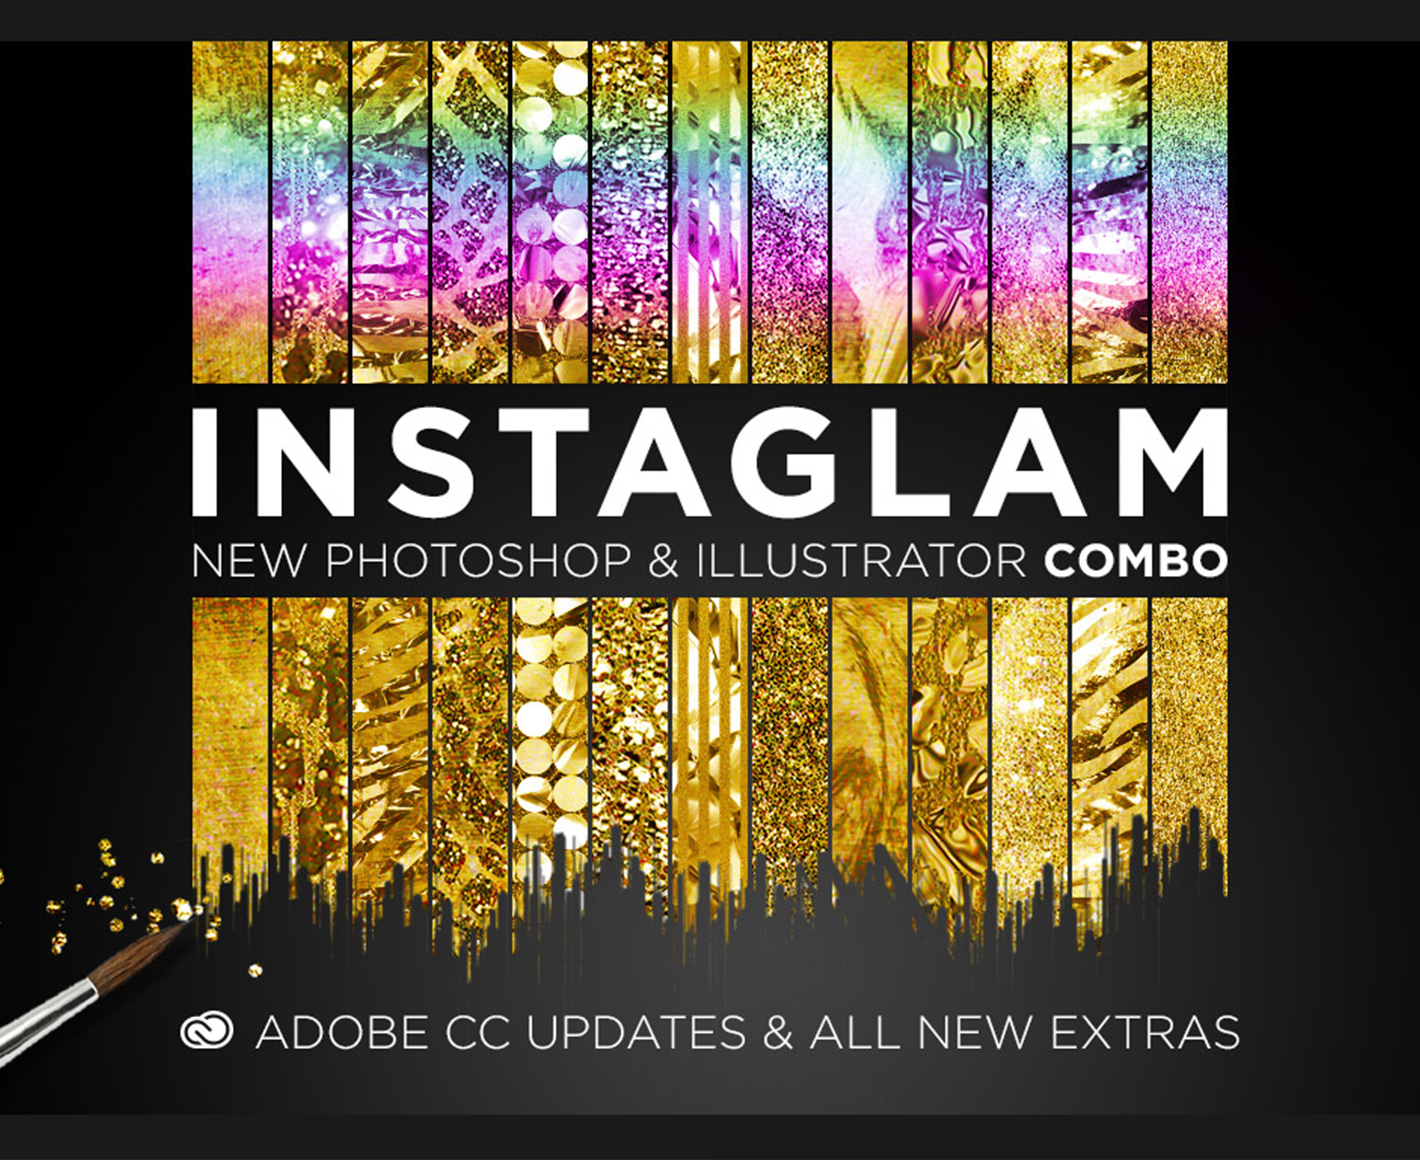 InstaGlam – Creative Cloud Combo (for Photoshop and Illustrator)